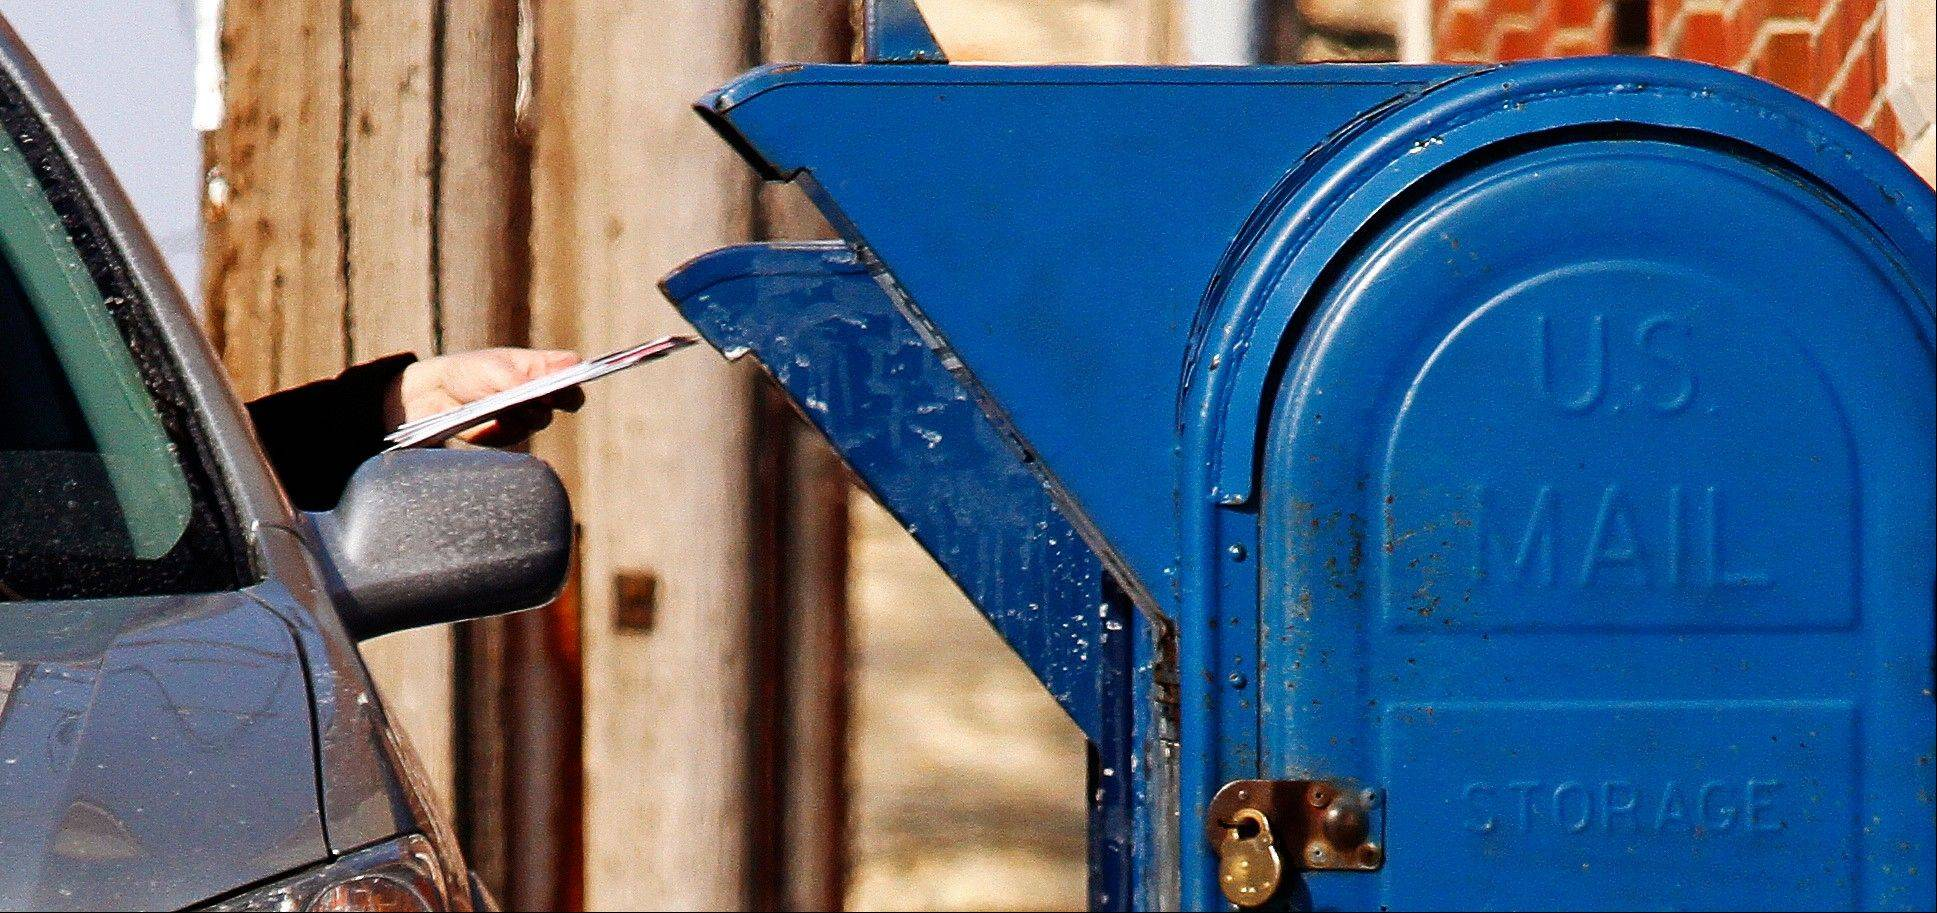 The United States Postal Service said it will no longer be delivering mail on Saturdays Beginning August 1. The cuts are said to save billions of dollars.